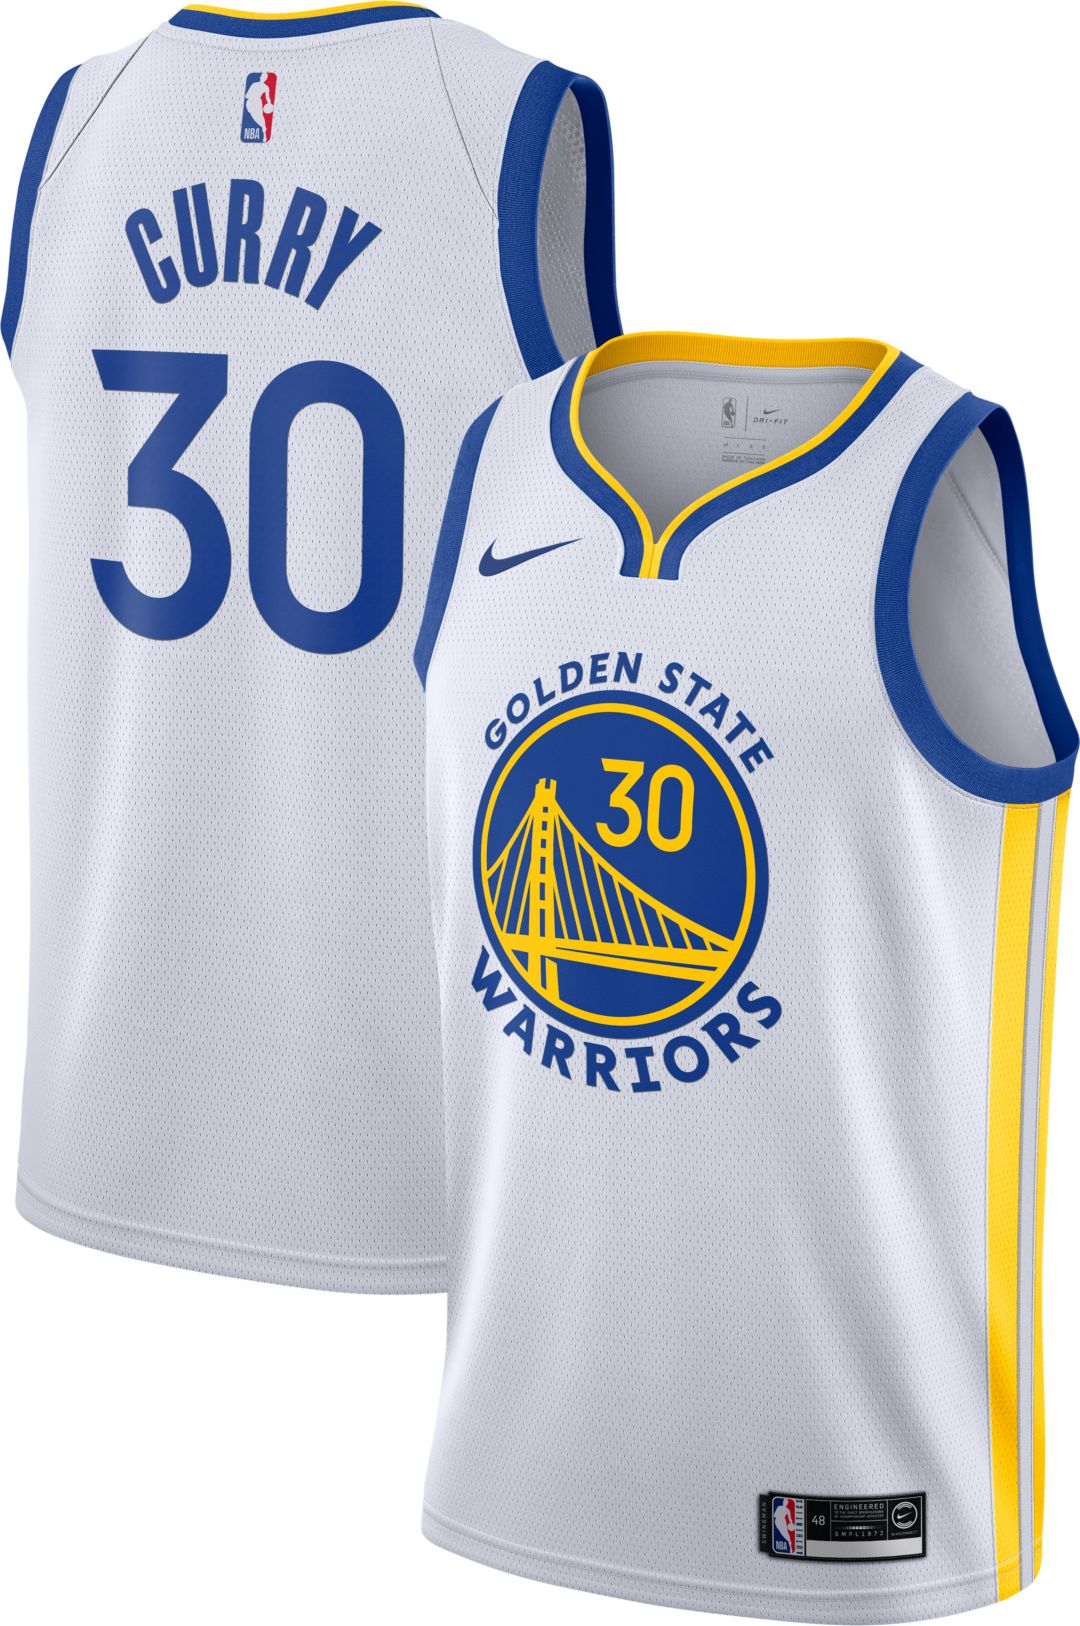 huge discount 4bd3e f15b7 Nike Men's Golden State Warriors Stephen Curry #30 White Dri-FIT Swingman  Jersey